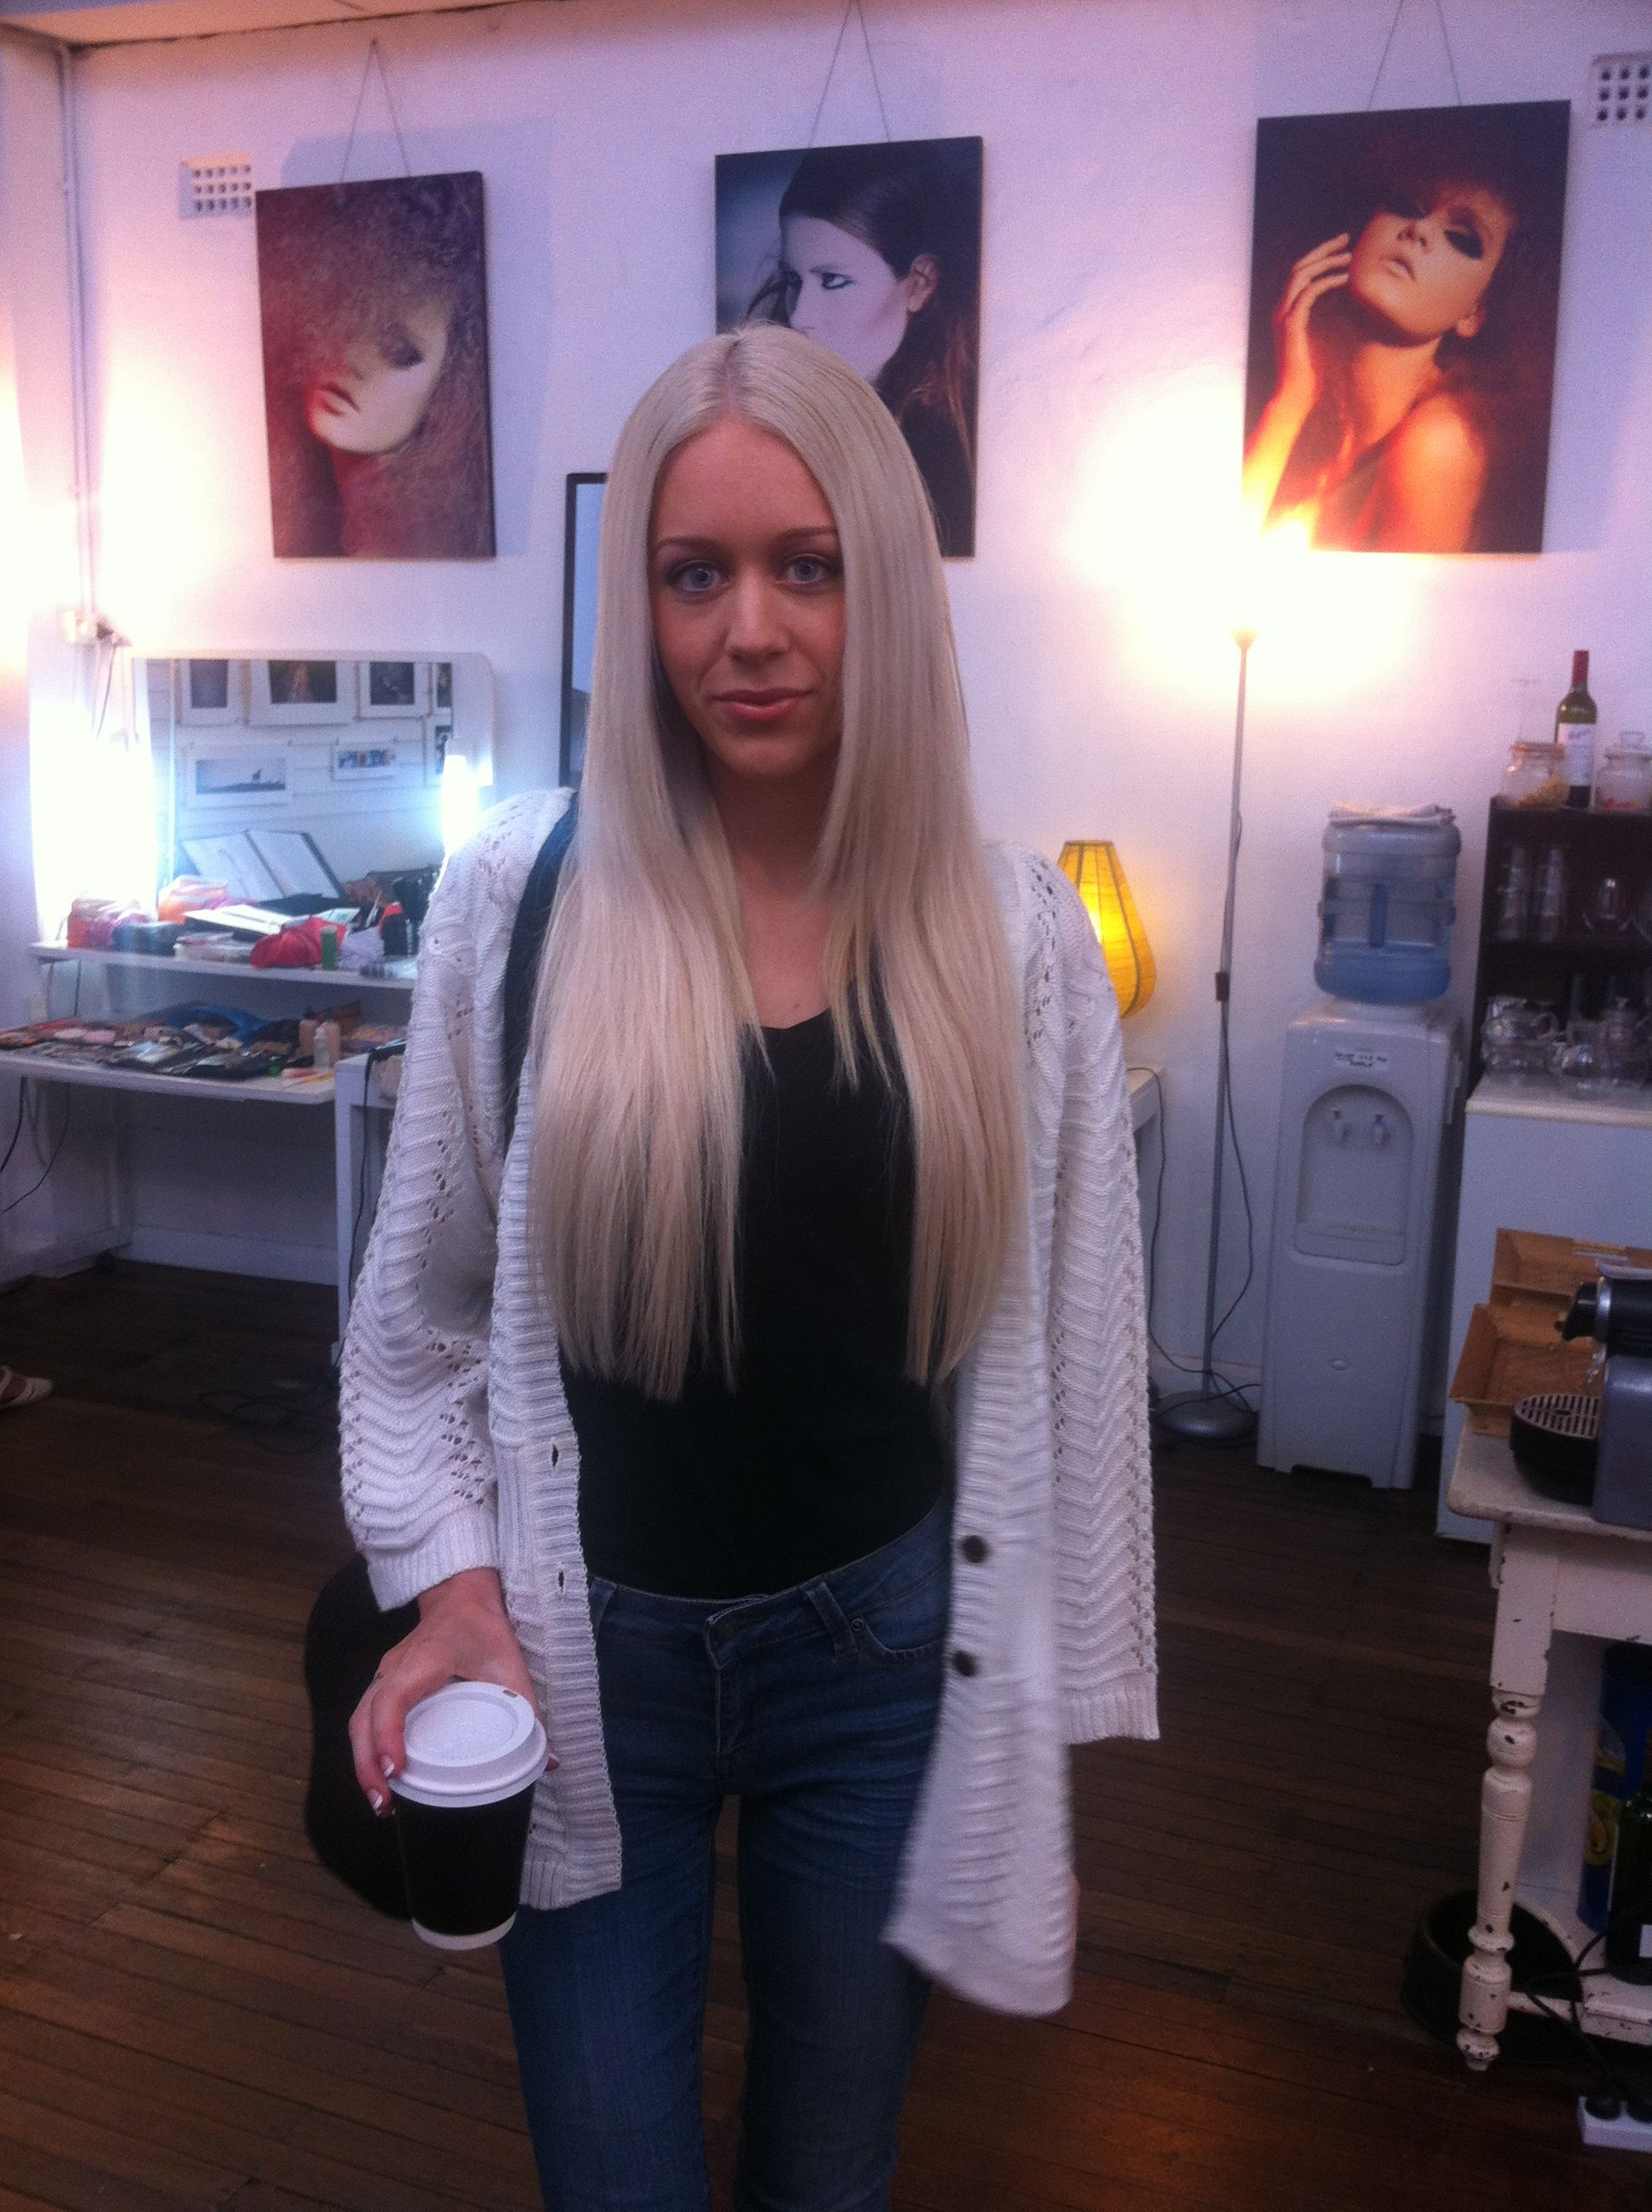 Behind the scenes at the zala hair extensions shoot model taylor buy platinum blonde 24 inch clip in hair extensions today at zala over of 24 inch human hair free post on all clip hair extensions australia wide pmusecretfo Gallery